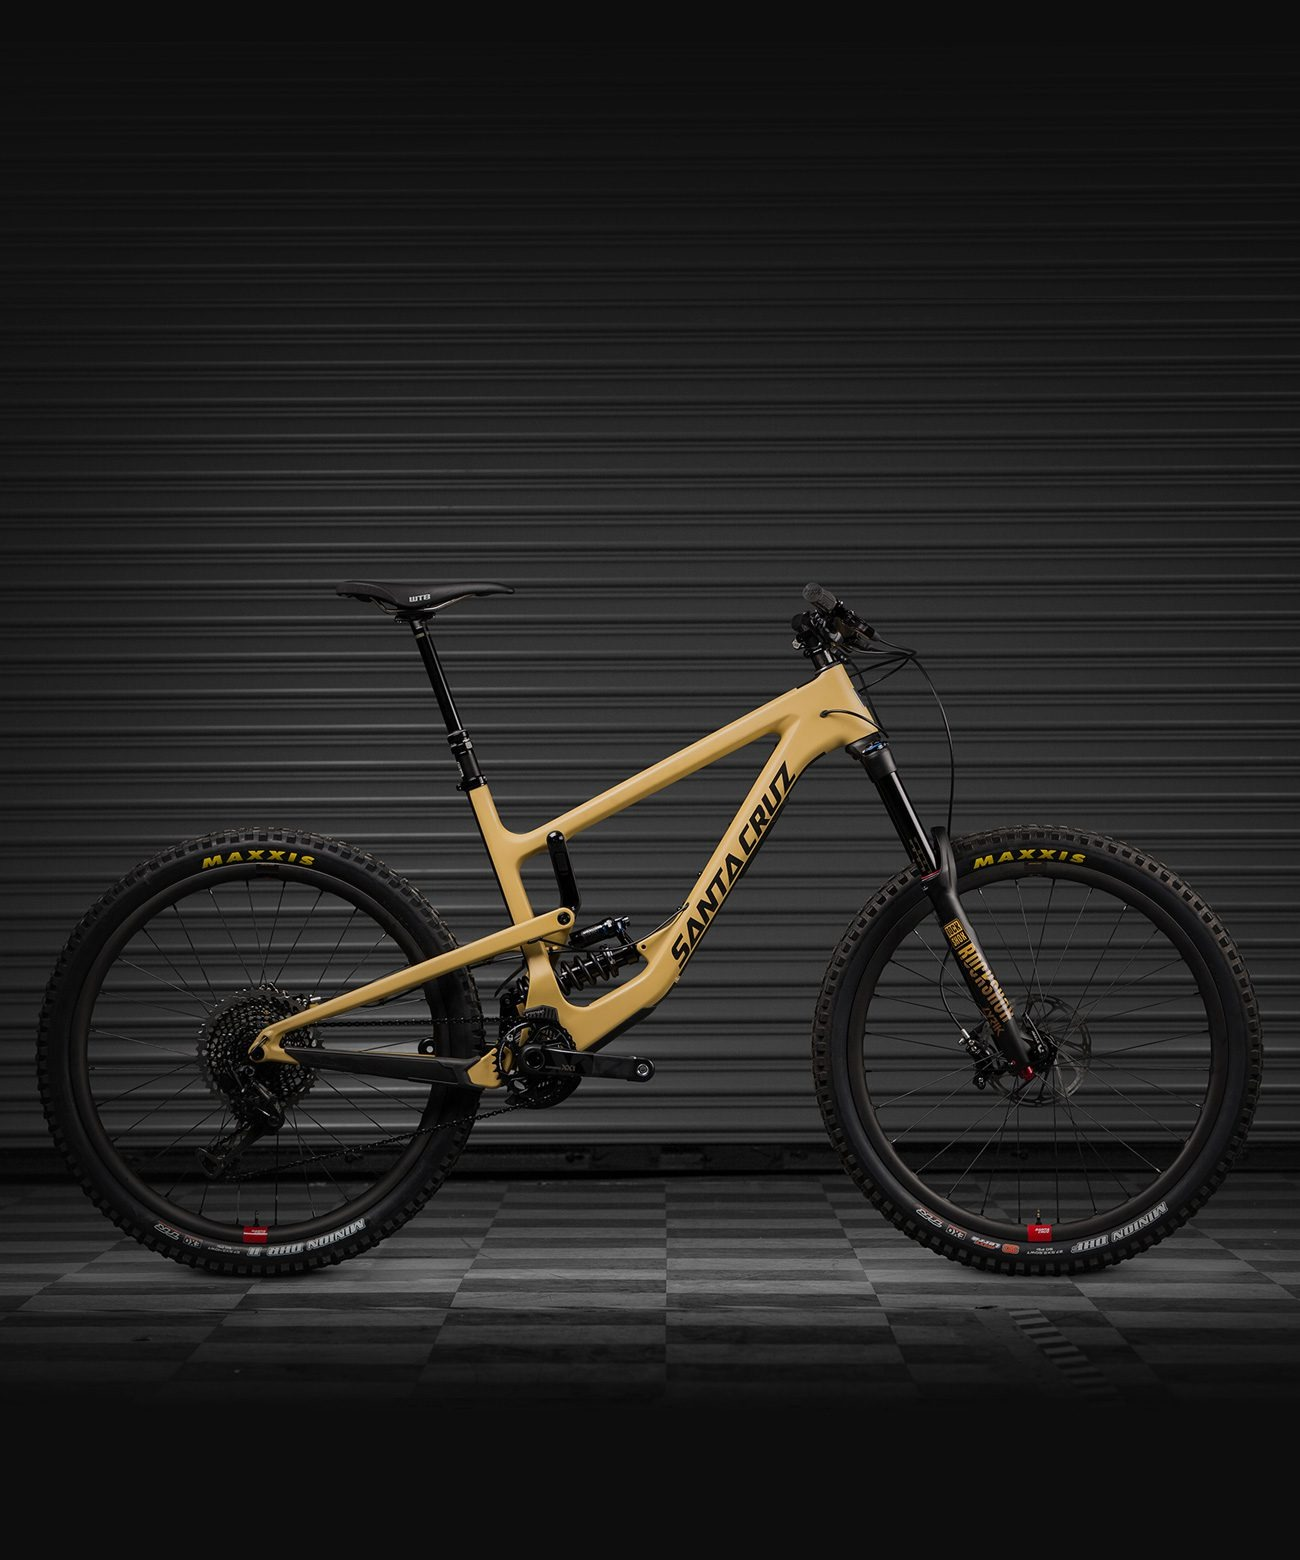 b842c571e9a 2018 Santa Cruz Bicycles Guide from Summit Bicycles - Summit ...